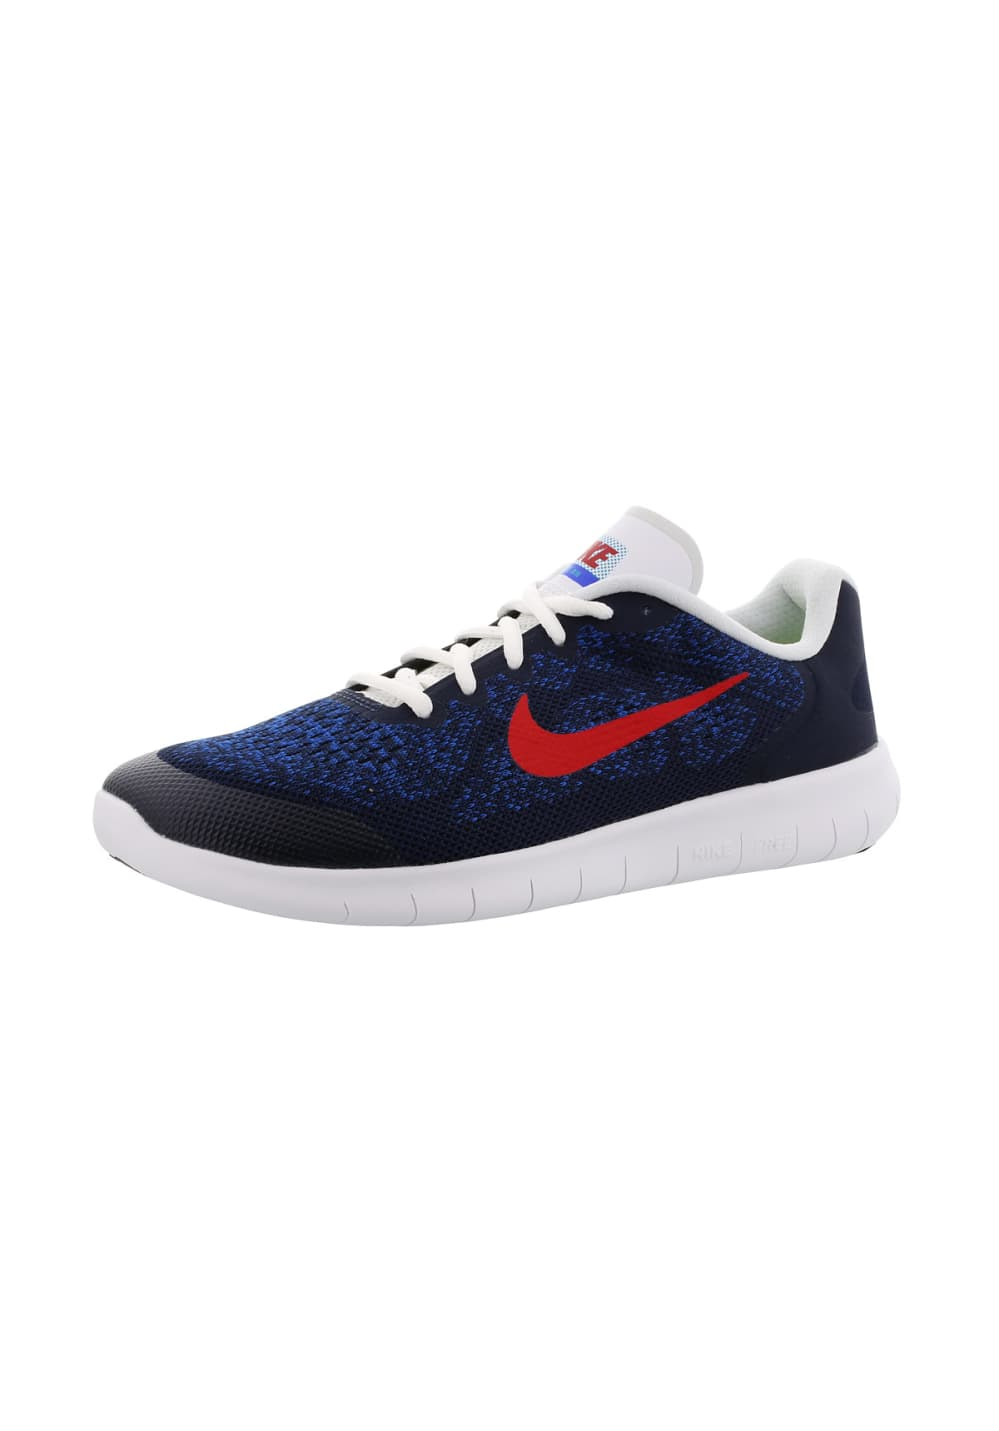 newest collection 750a1 bd7d8 Nike Free RN 2017 (GS) - Laufschuhe - Blau   21RUN